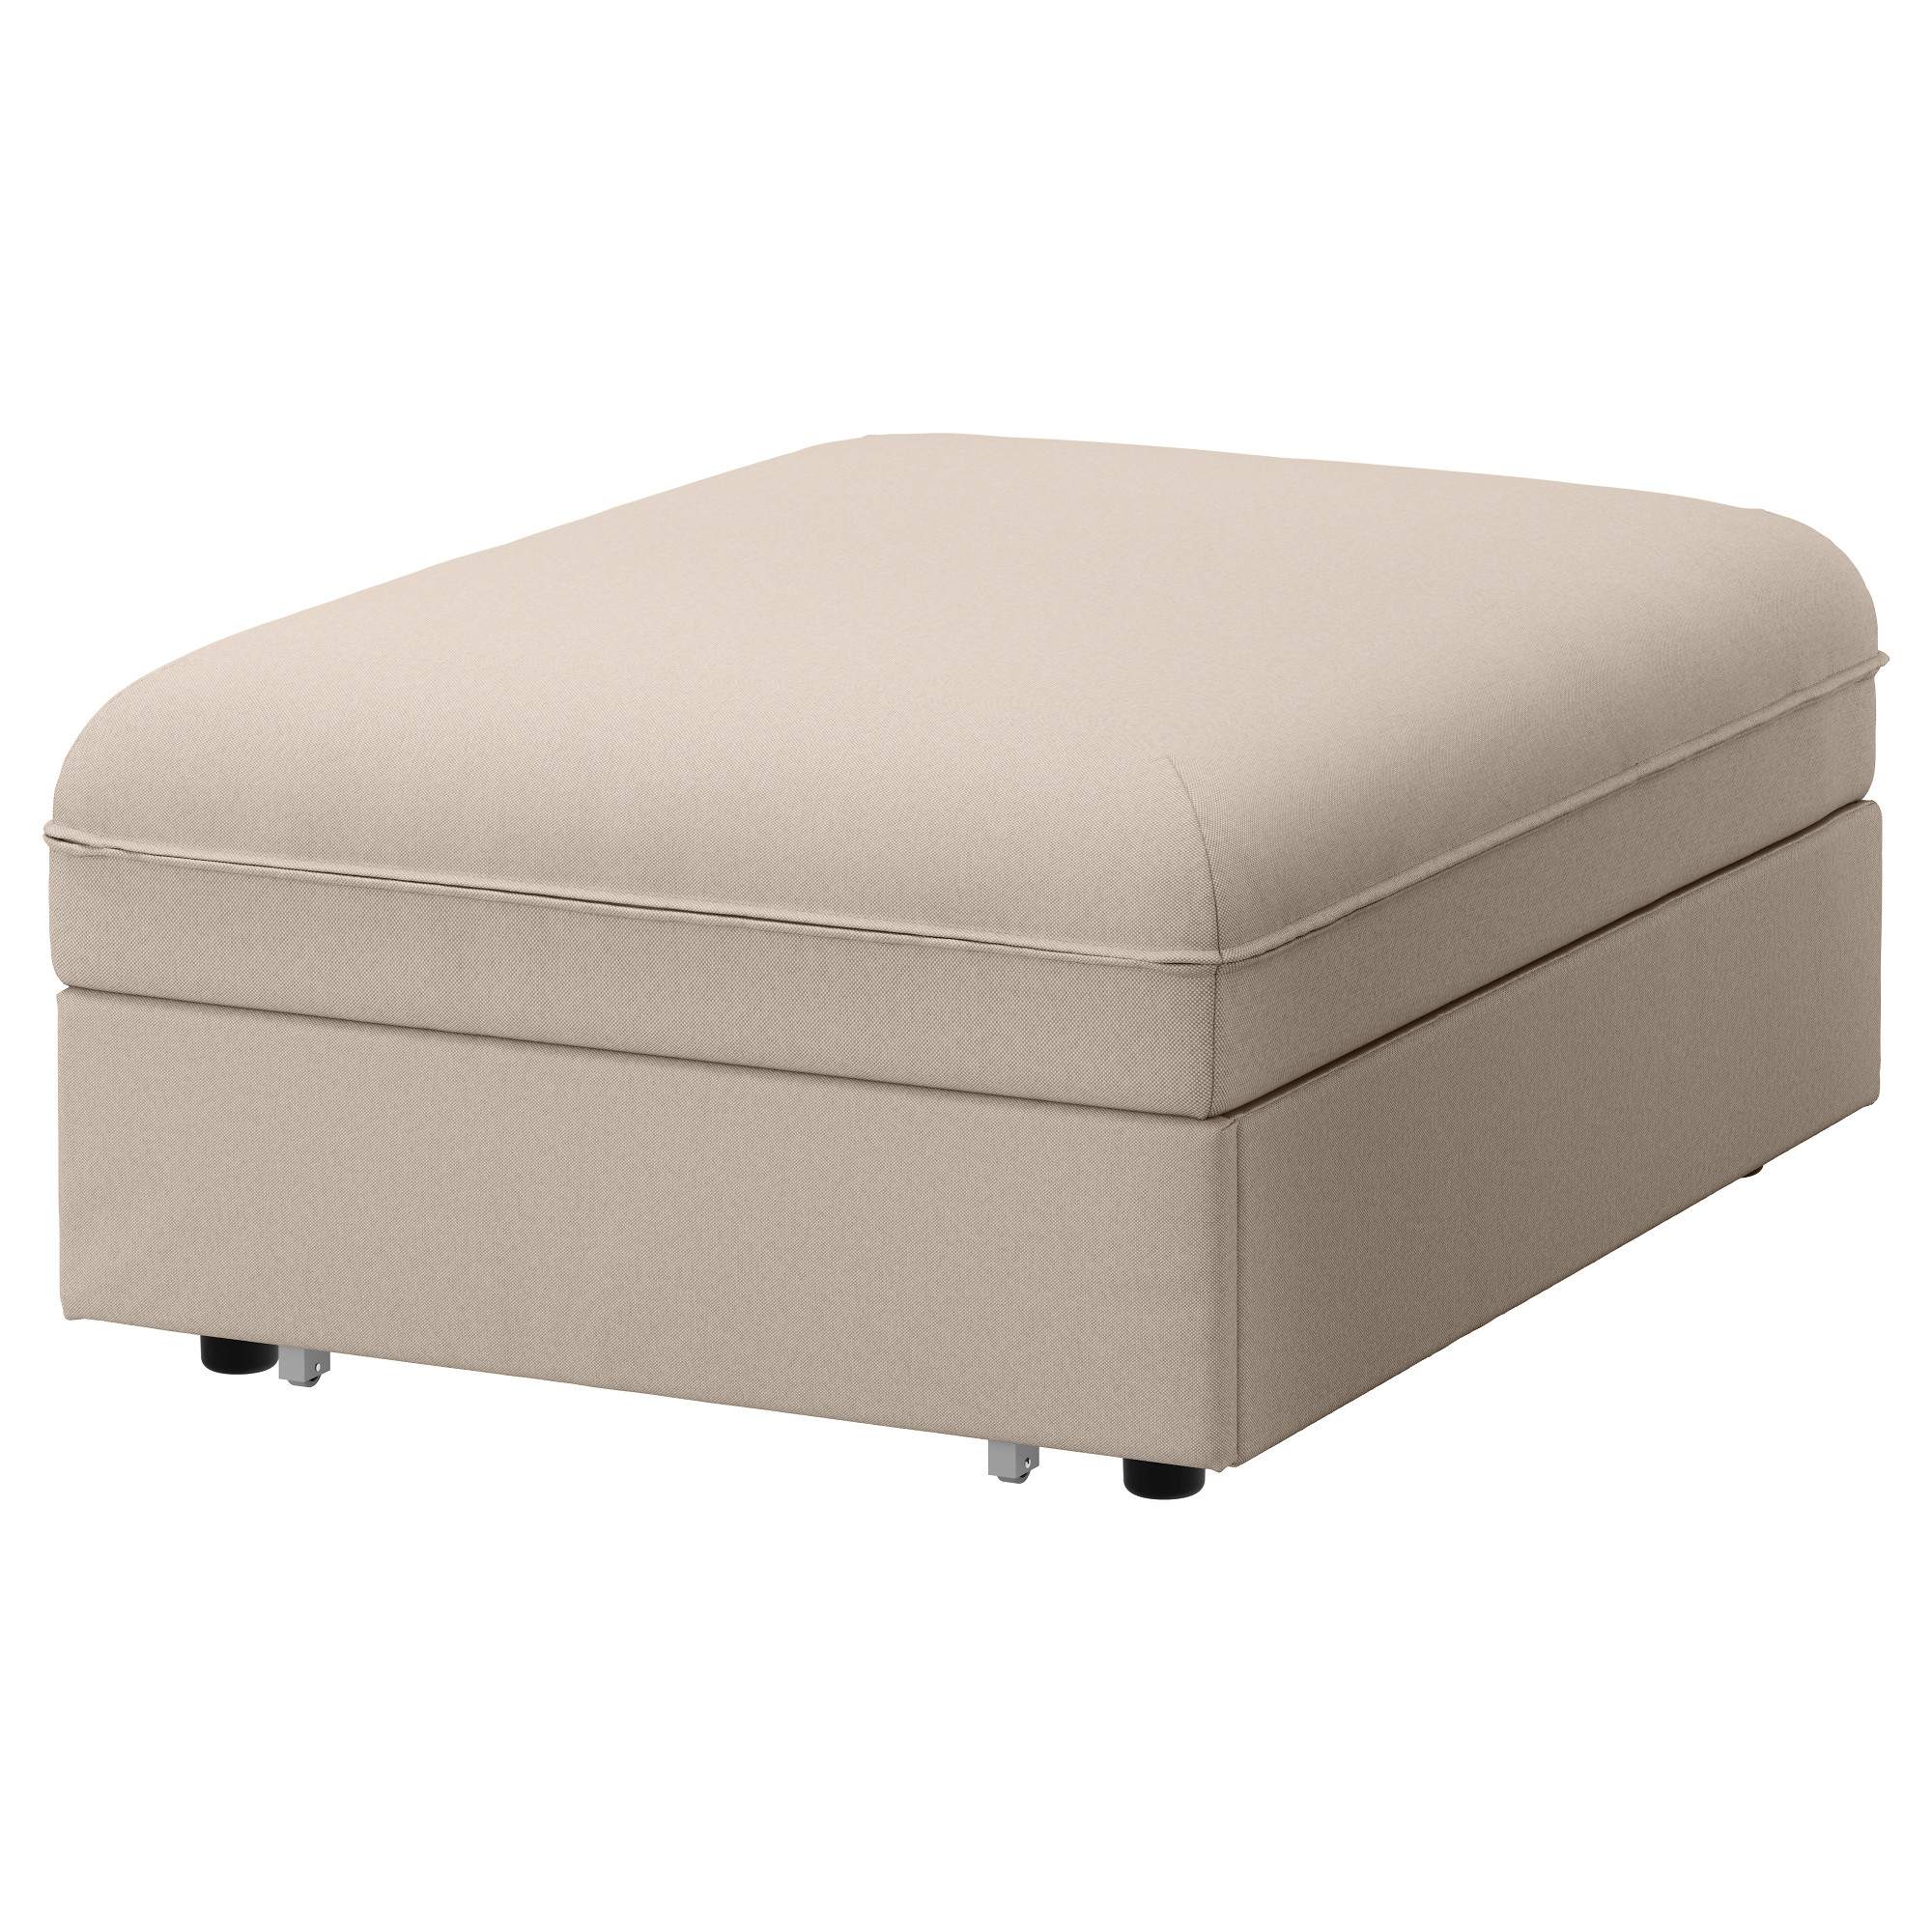 Futon sofa cama ikea for Sofa cama puff barato